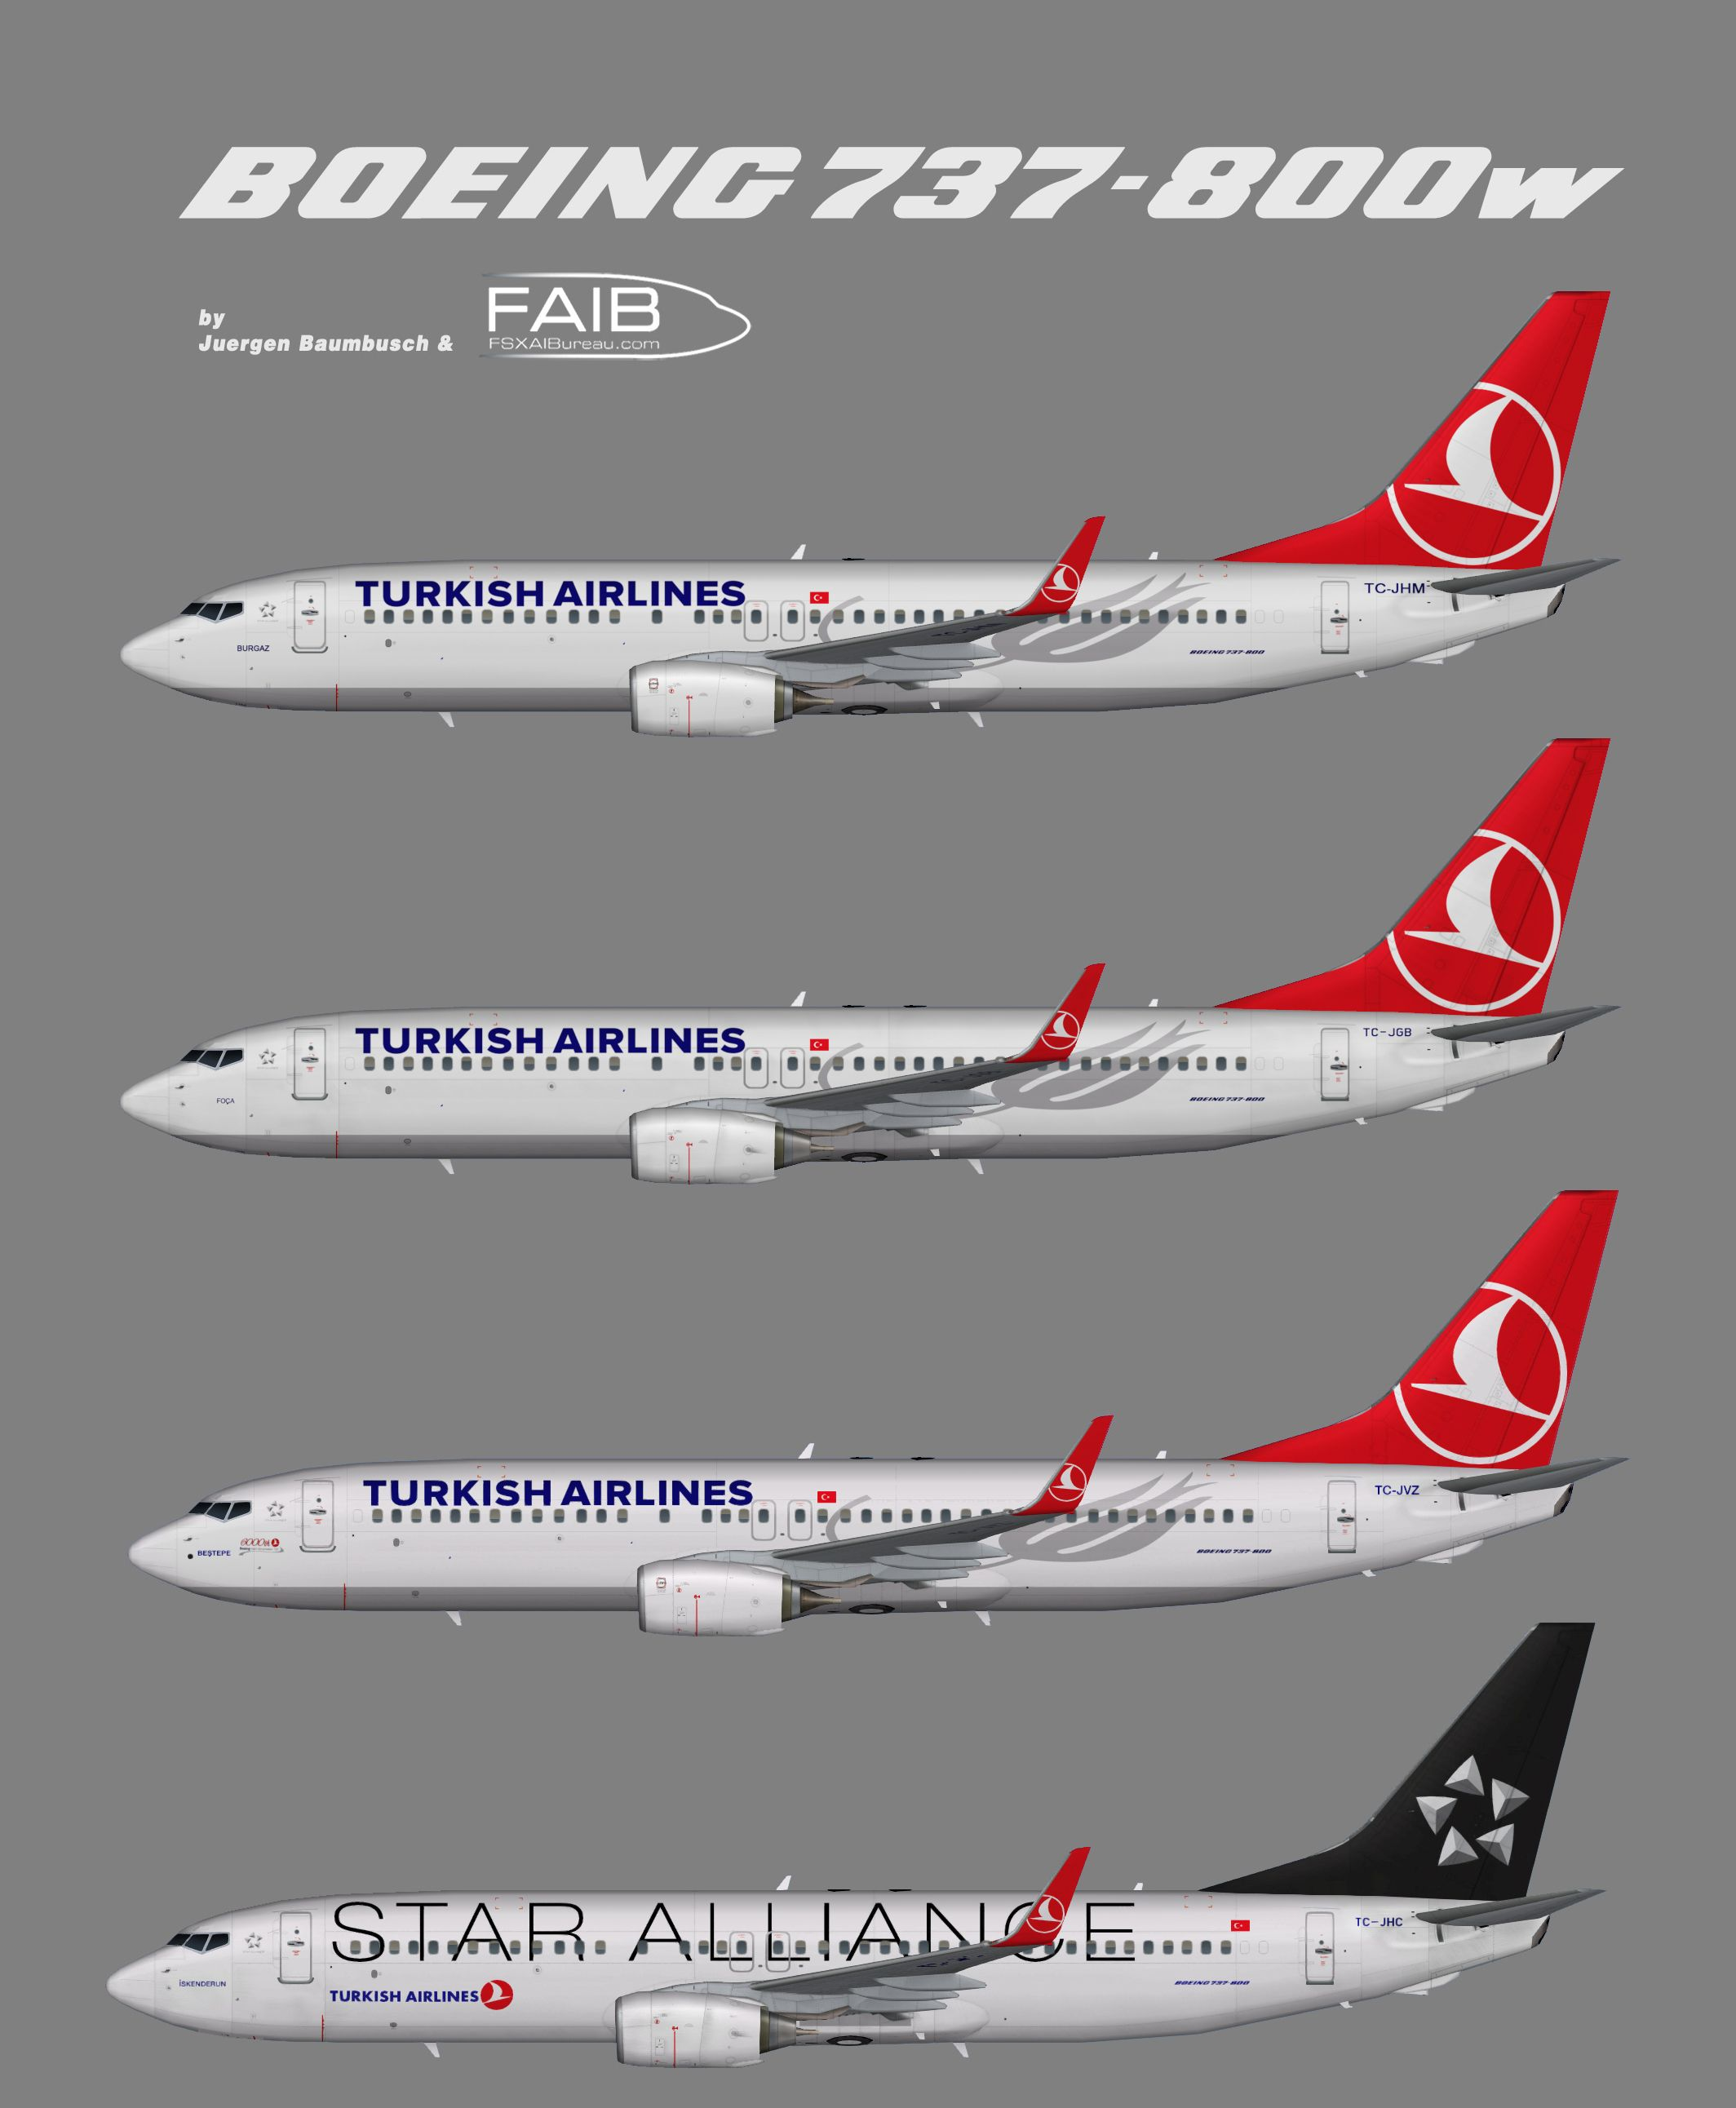 Turkish Airlines Boeing 737 800w